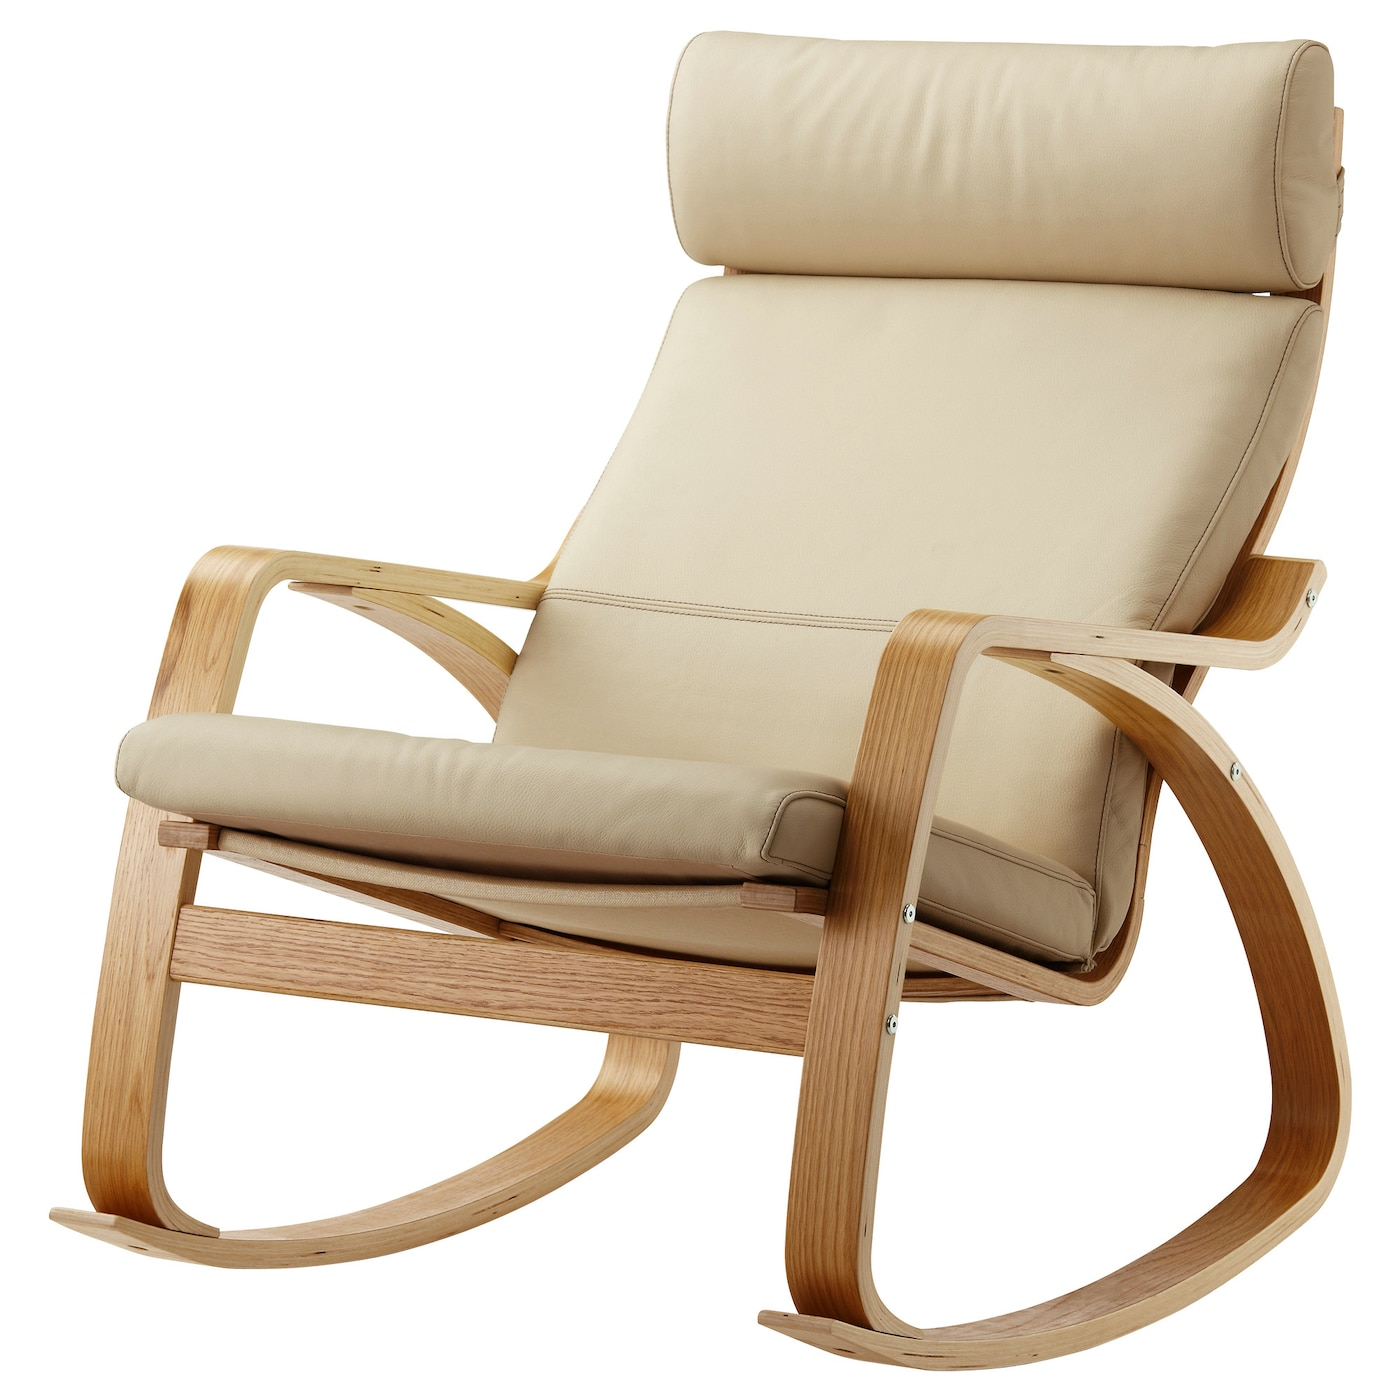 Ikea PoÄng Rocking Chair The High Back Gives Good Support For Your Neck